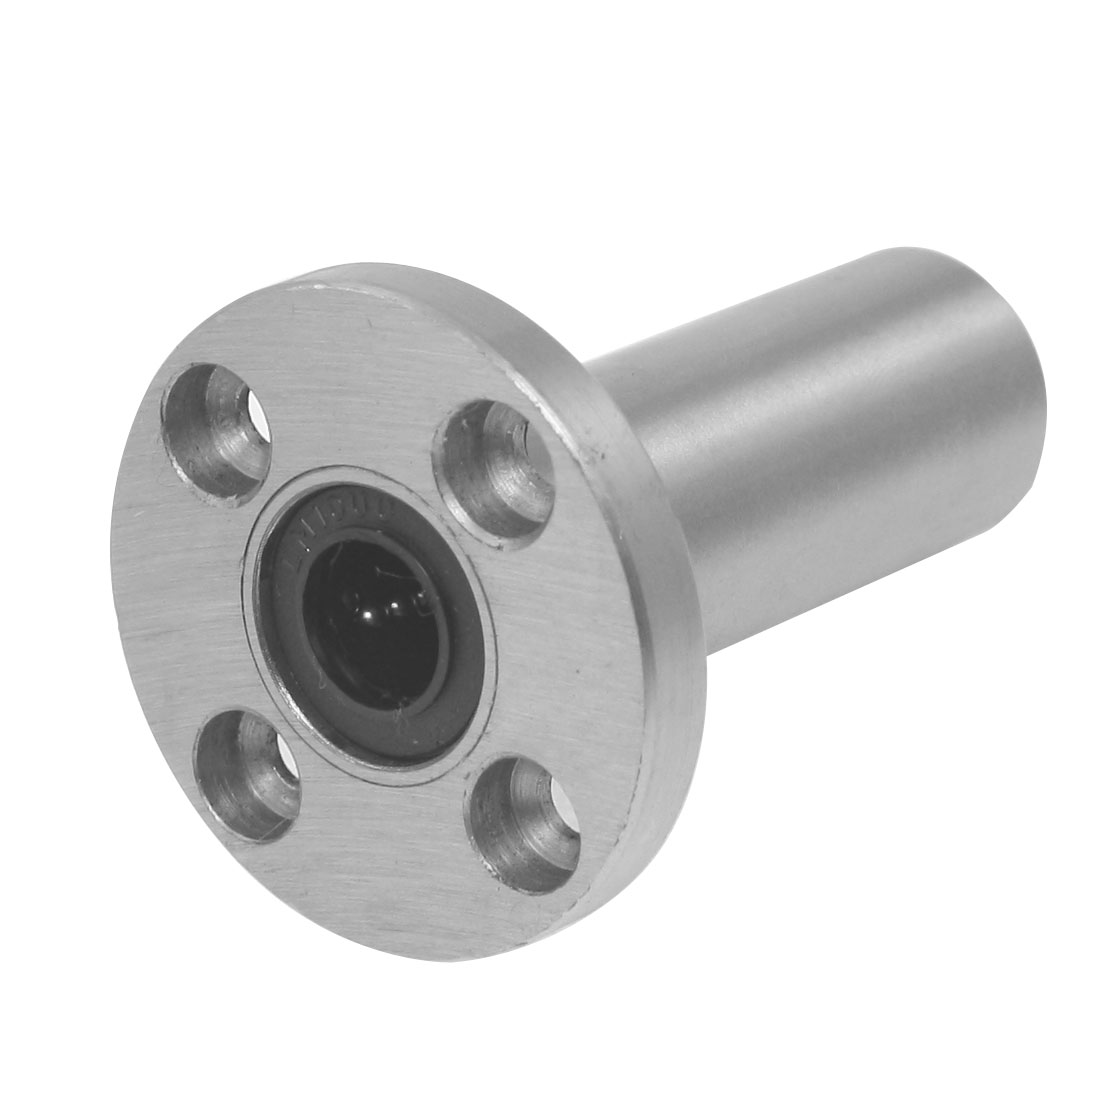 Round Flanged Router Linear System Bushing Long Ball Bearing 10mm